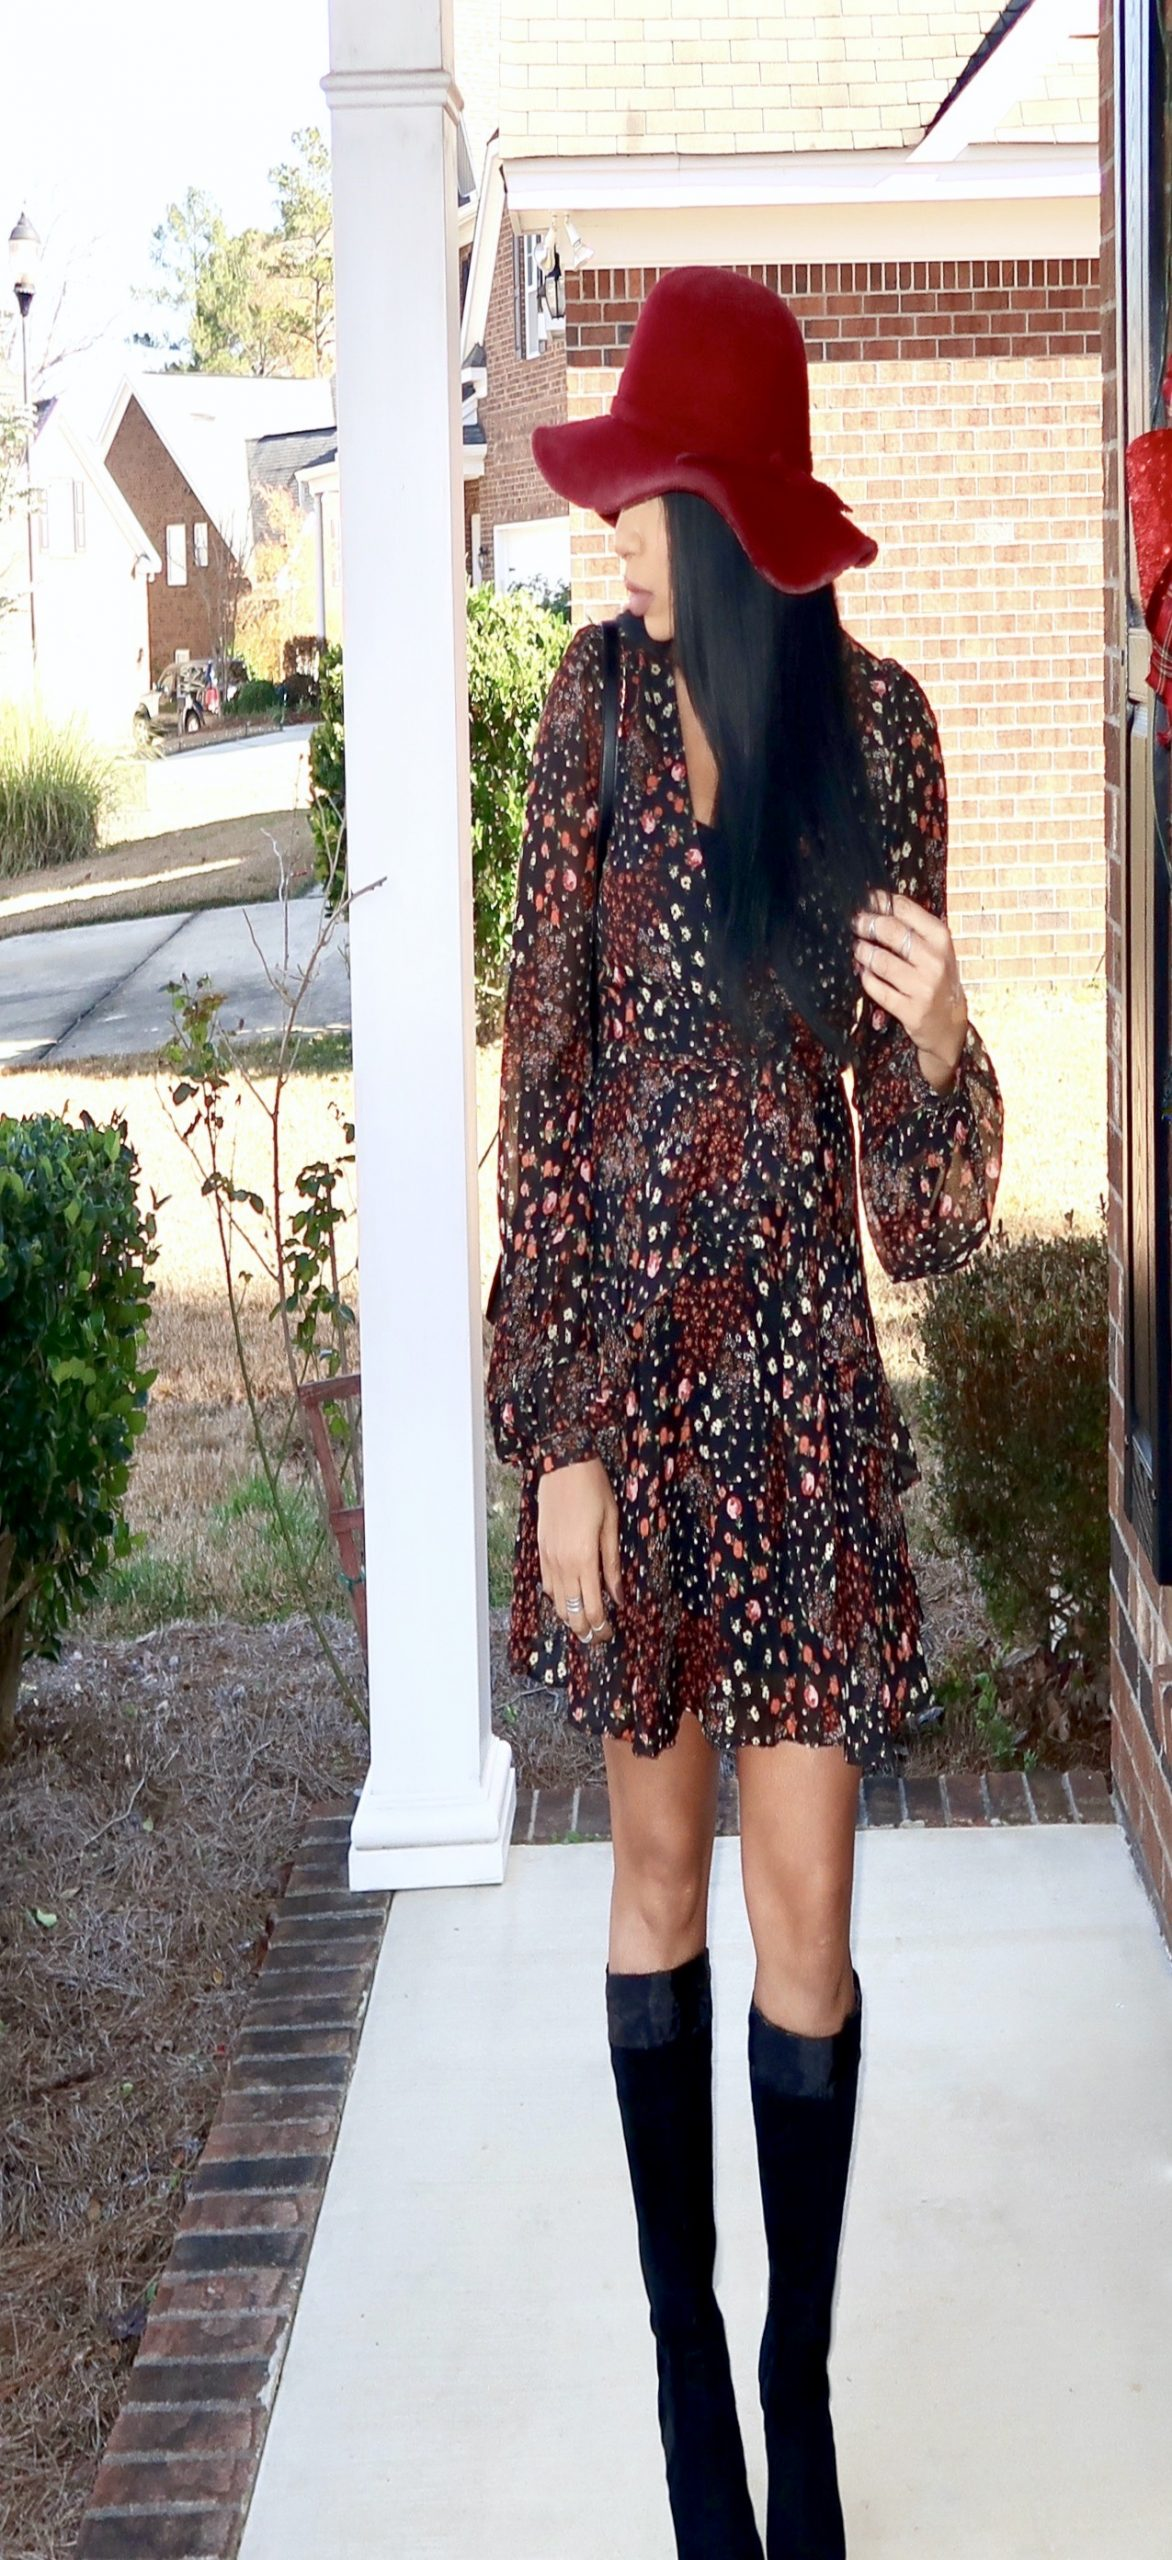 Wearing floral print in the Fall and Winter